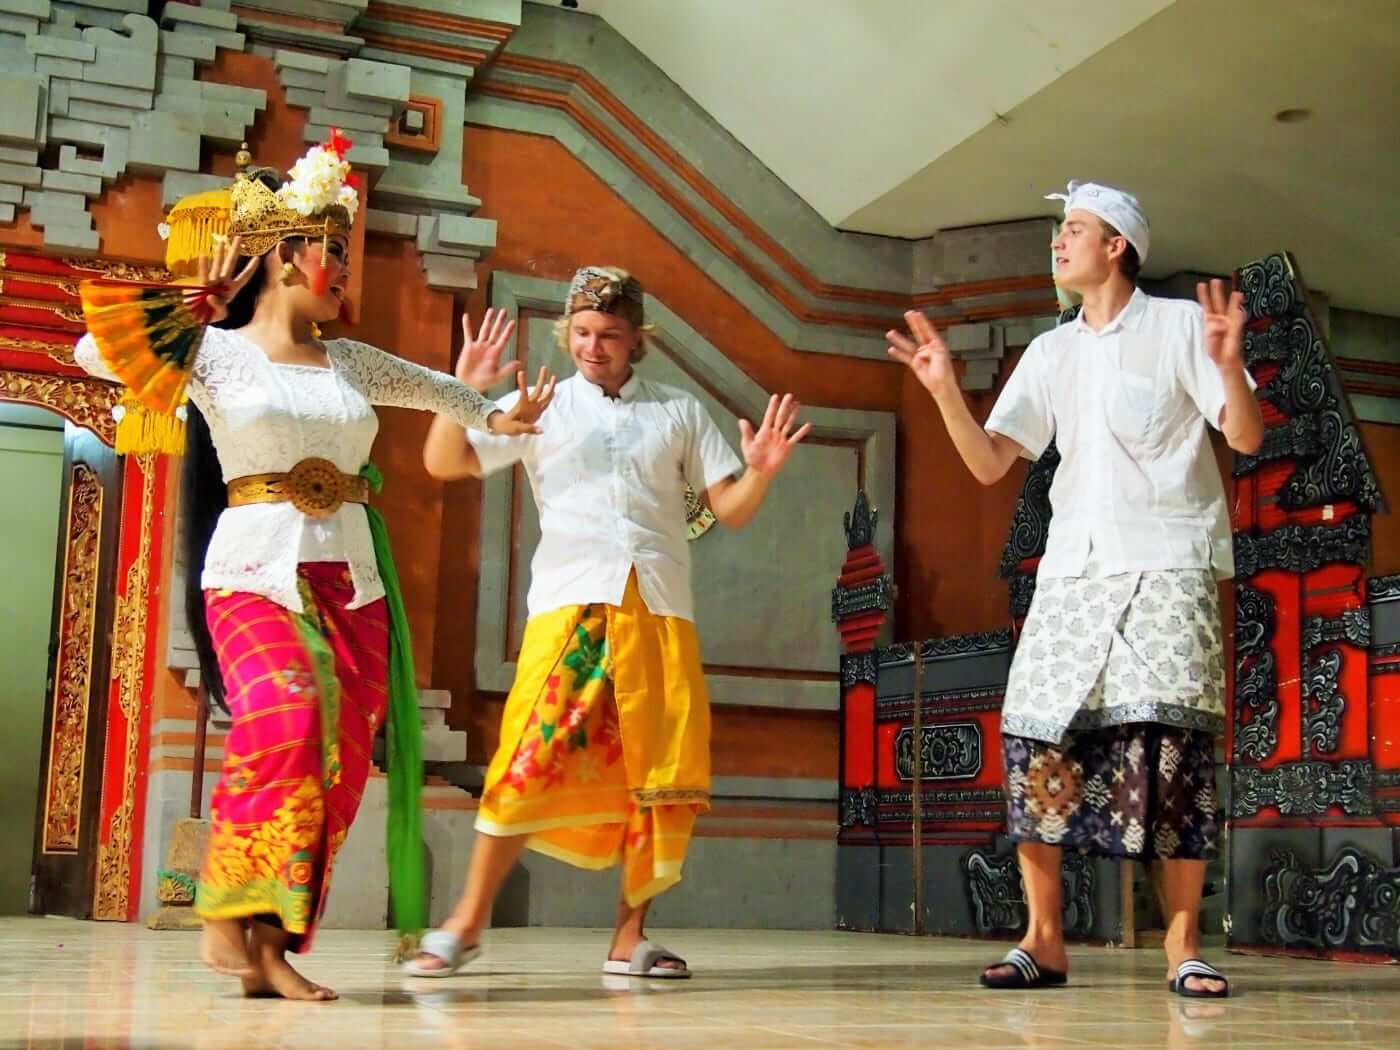 students dancing traditional balinese dance along with balinese girl